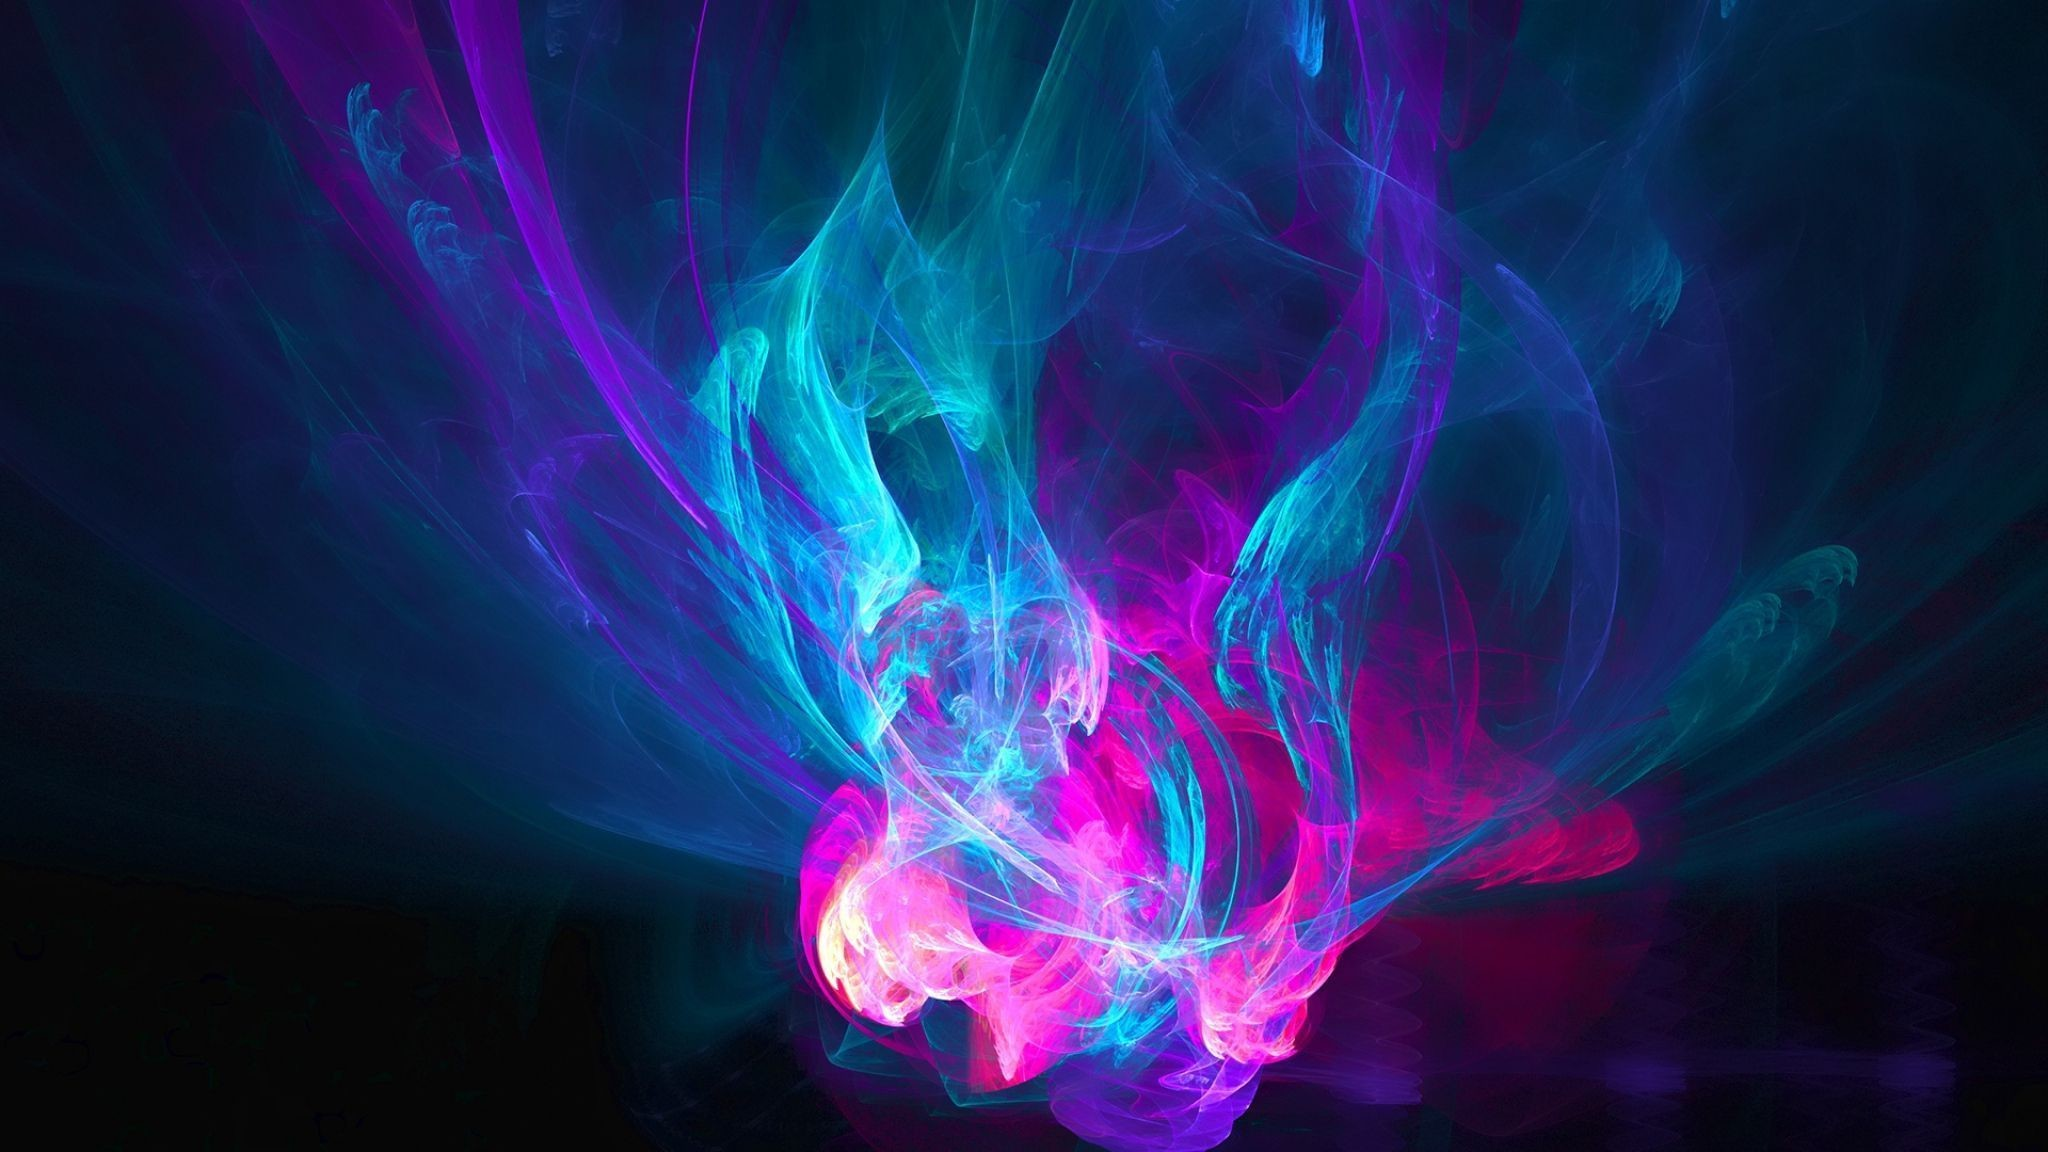 Download Wallpaper Abstraction, Light, Pink, Blue .